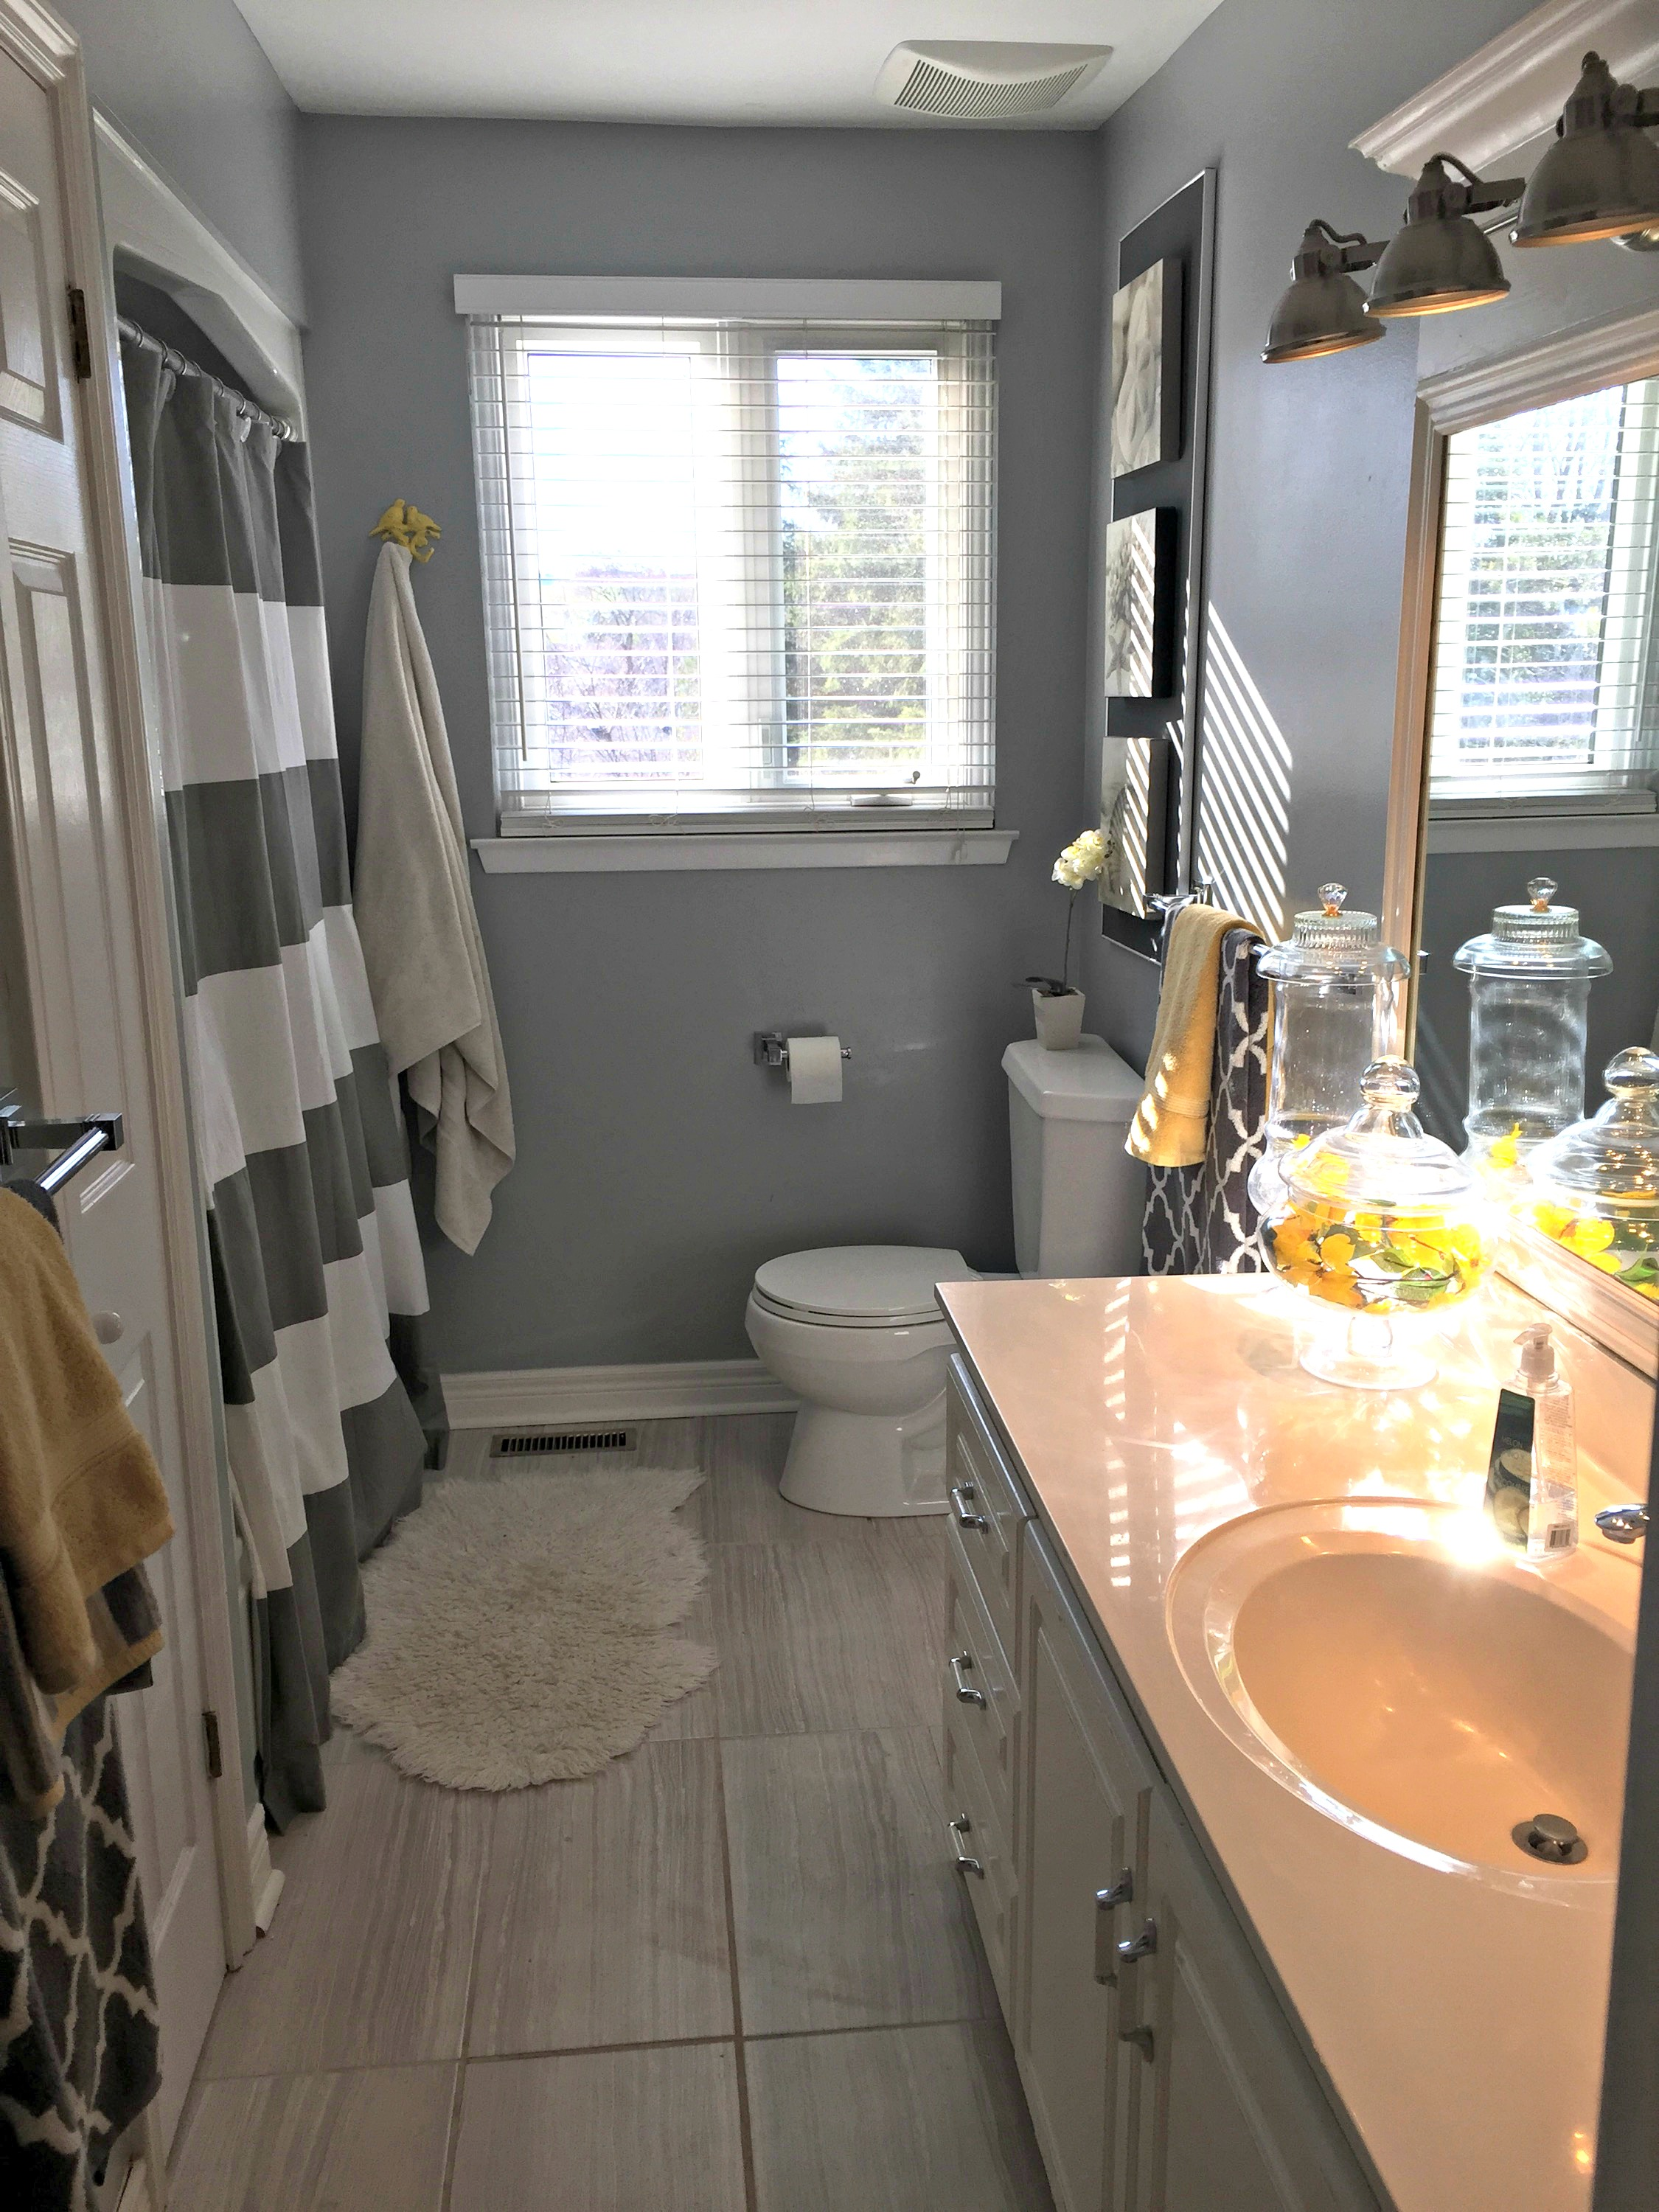 kids bathroom remodel see how to transform an entire space using new flooring paint - Bathroom Remodel Kids